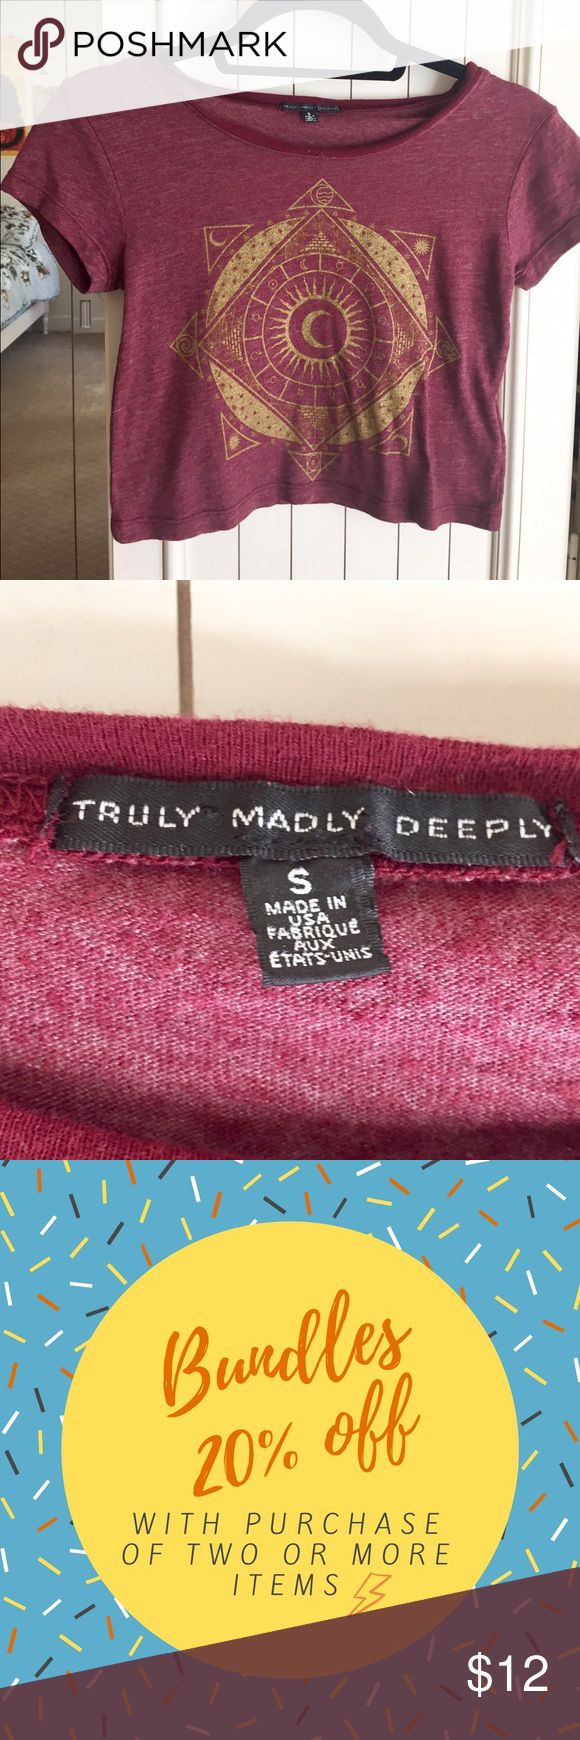 Truly madly deeply festival crop top Crop top with astrology design from urban outfitters brand truly madly deeply Urban Outfitters Tops Crop Tops